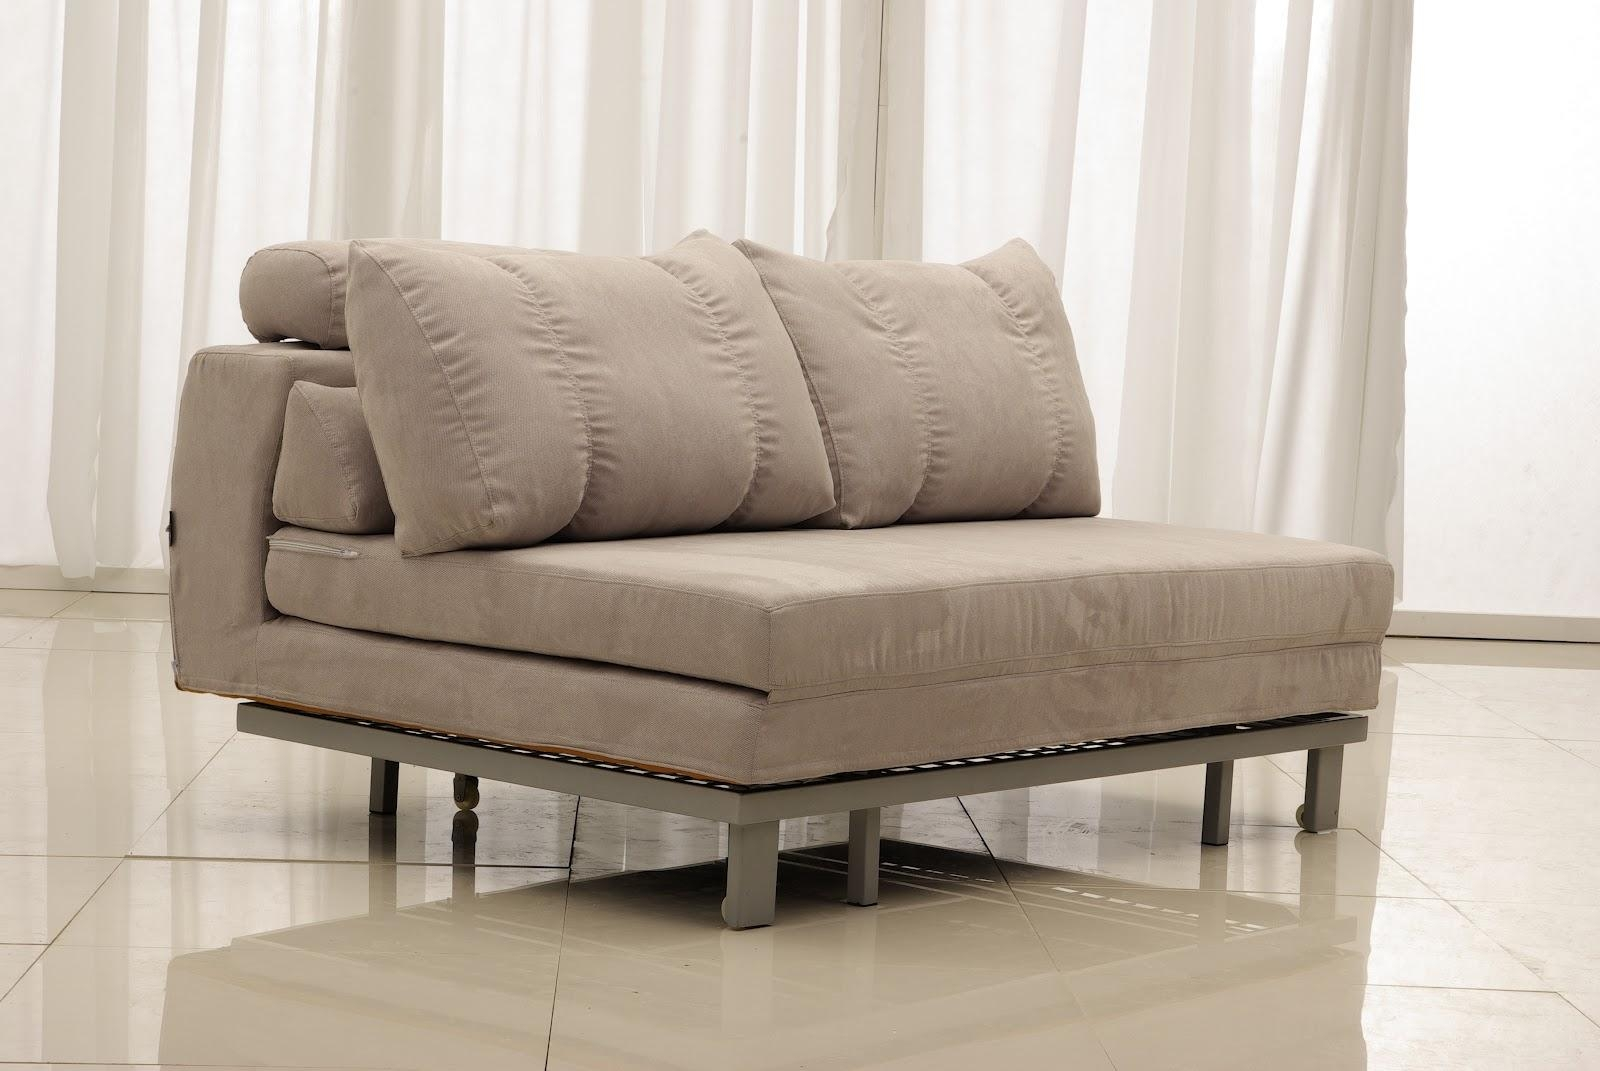 Beautiful Most Comfortable Sleeper Sofa 2017 80 With Additional With San Diego Sleeper Sofas (Image 1 of 20)